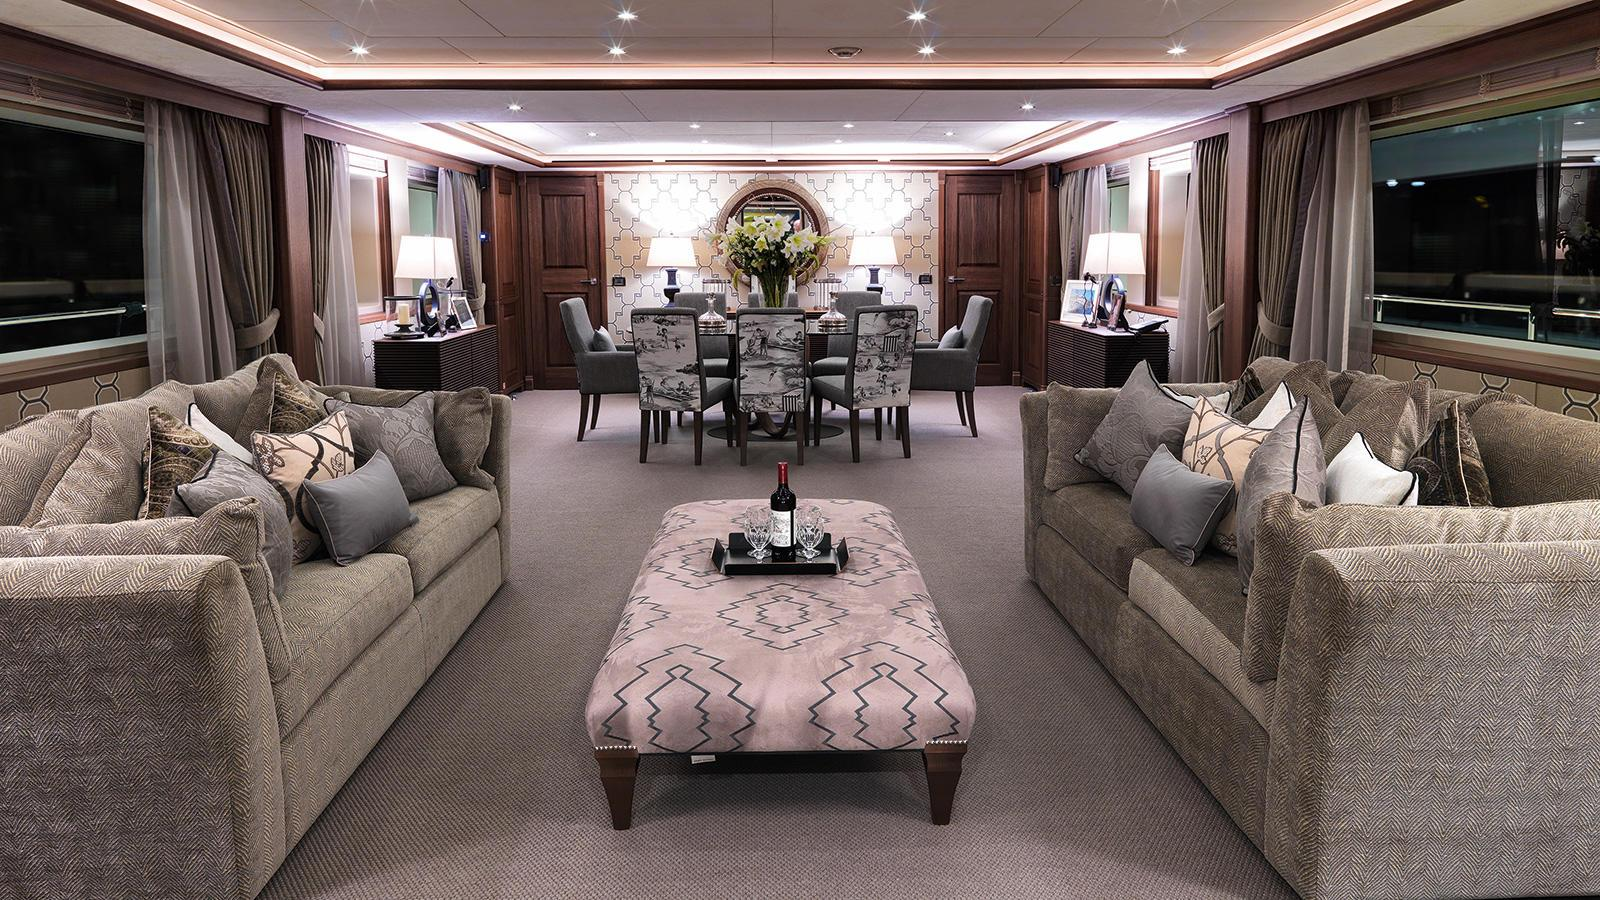 storm-motor-yacht-cantiere-dell-marche-darwin-107-2015-33m-living-dining